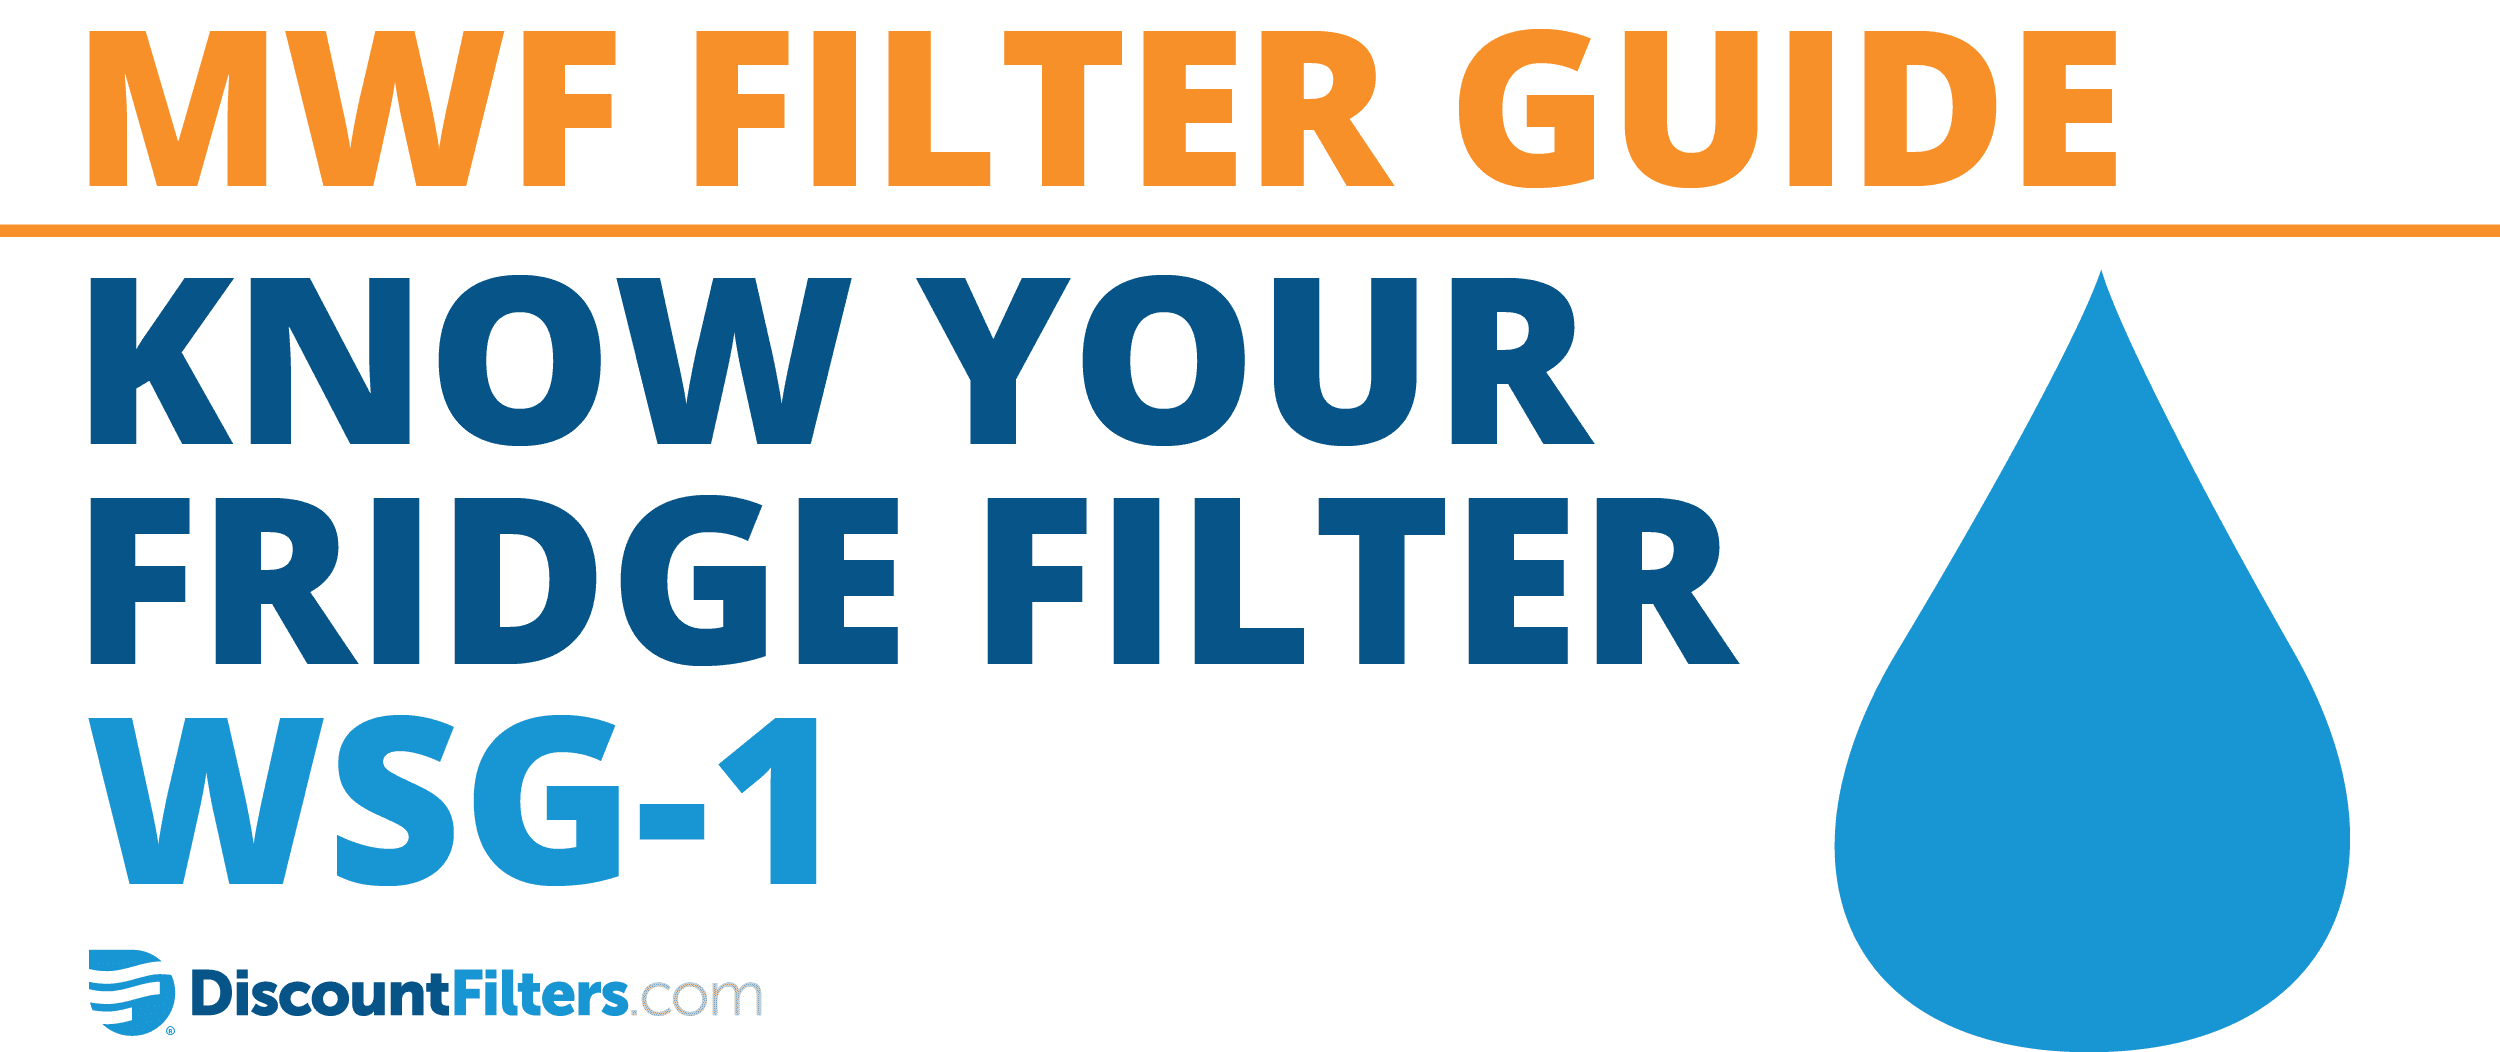 mwf filter replacement wsg-1 filter guide